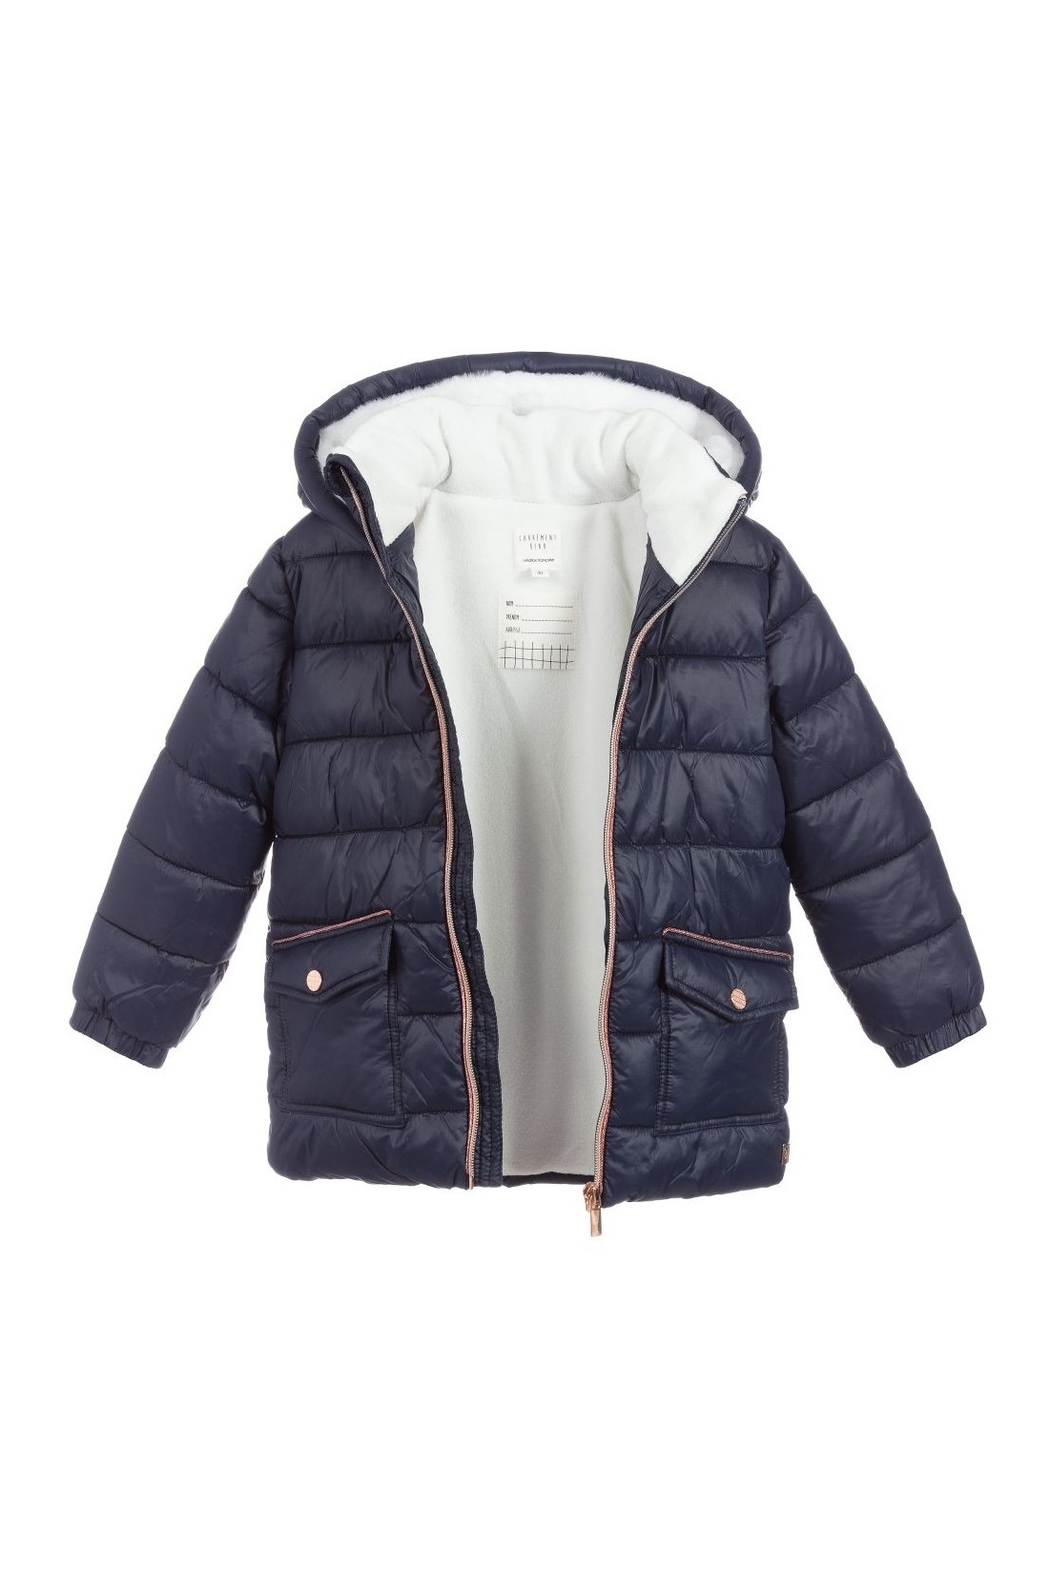 Carrement Beau  Kid's Navy Puffer Water Repellent Jacket (Unisex) - Front Full Image